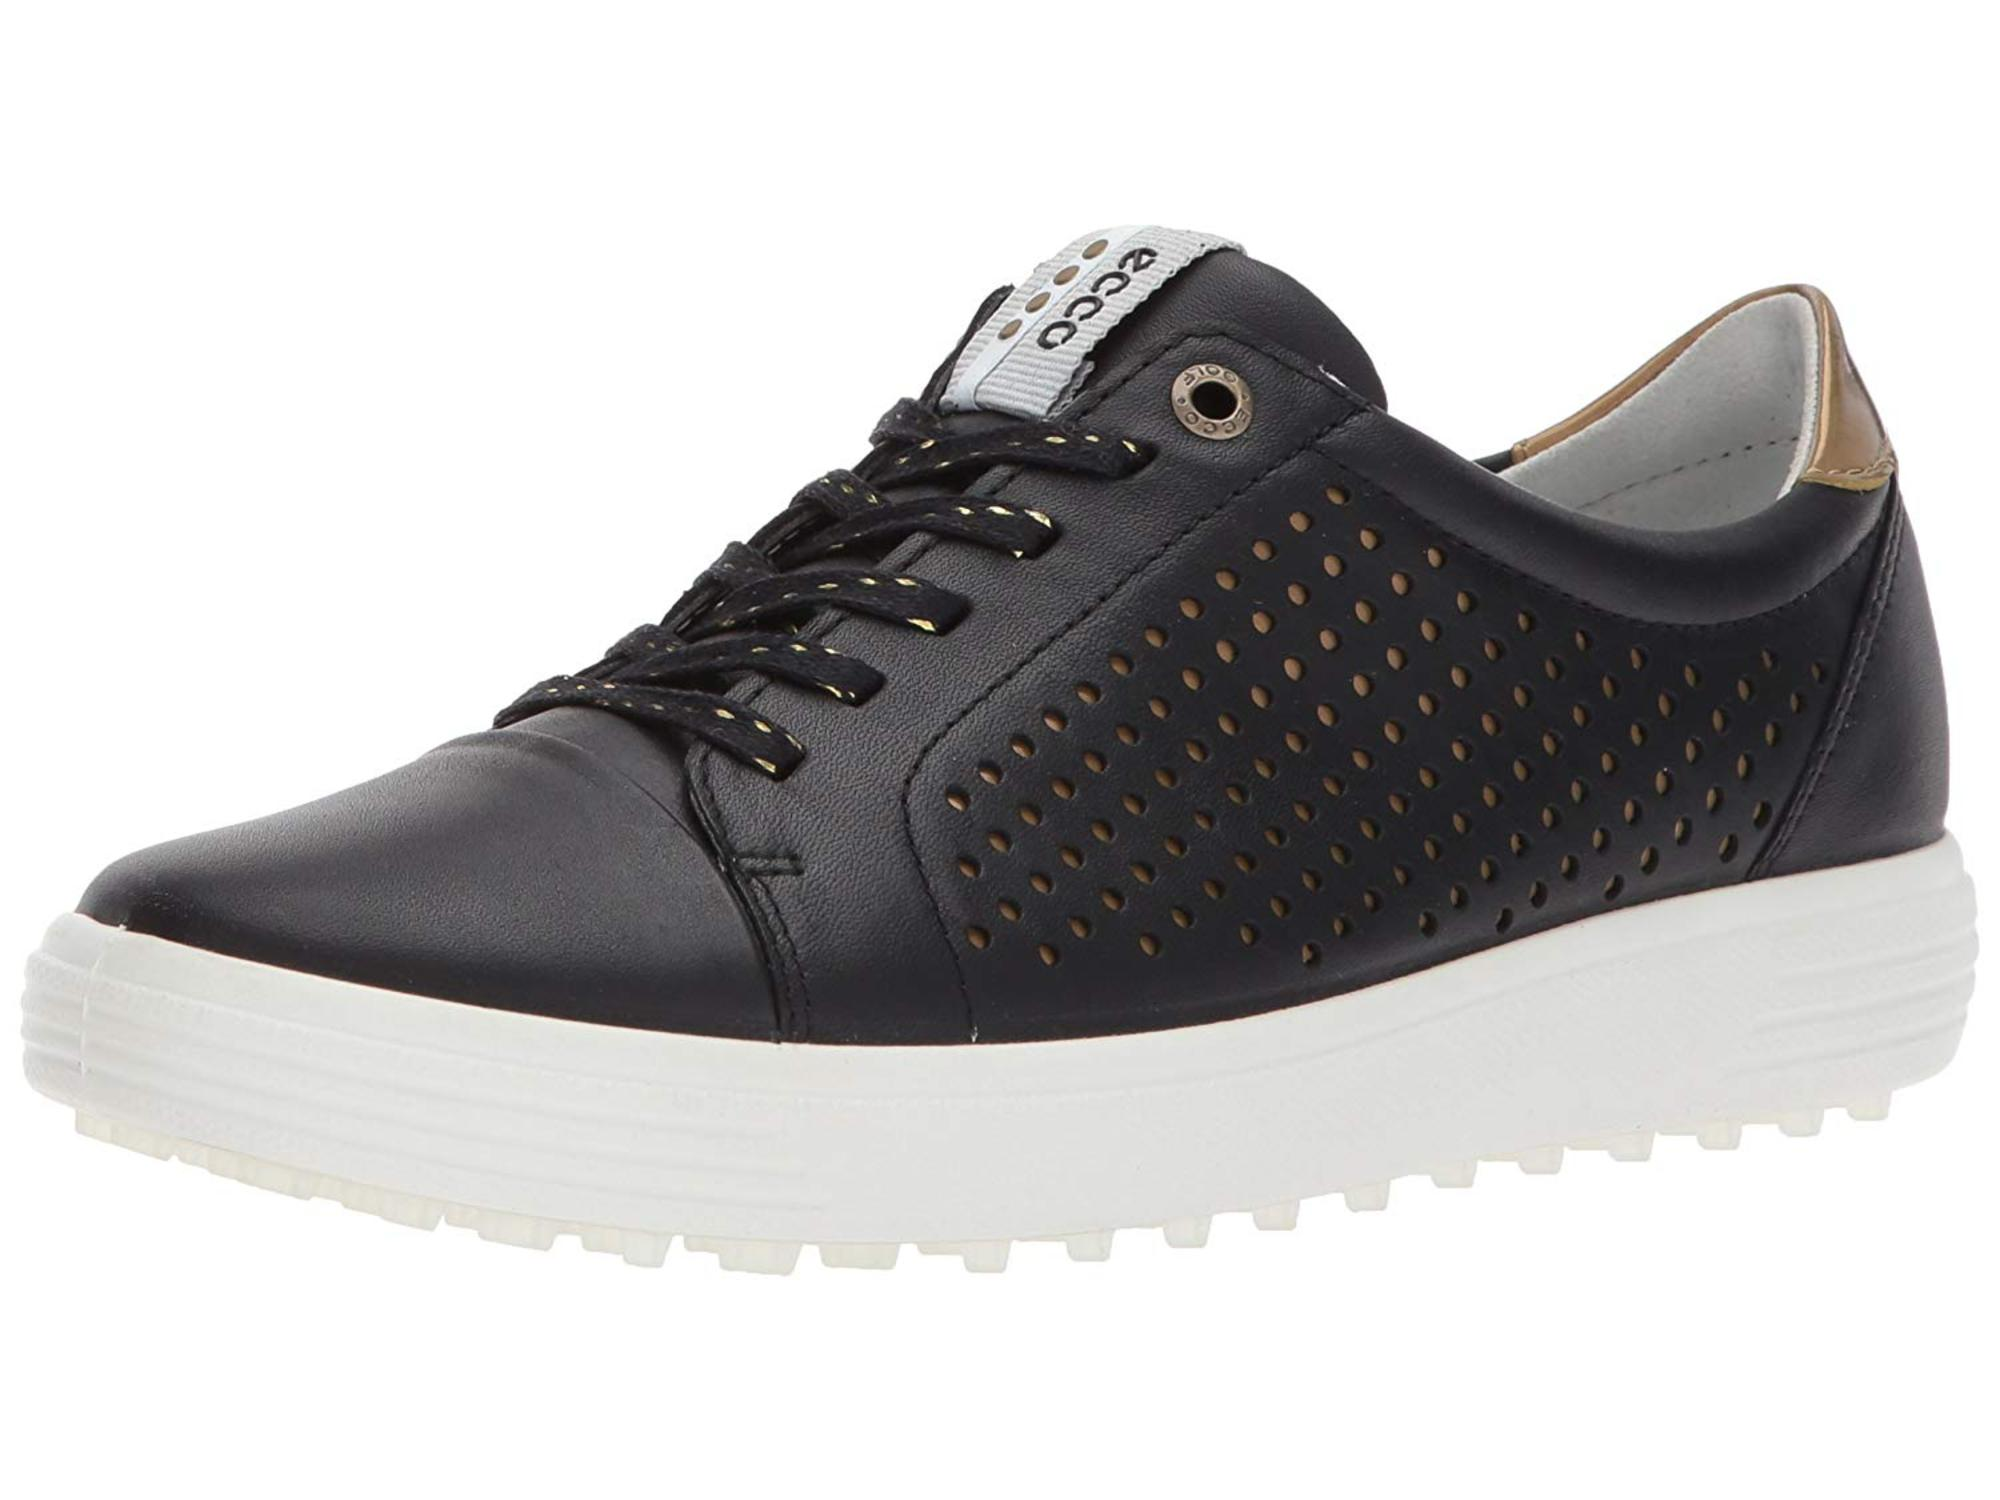 ecco golf shoe laces